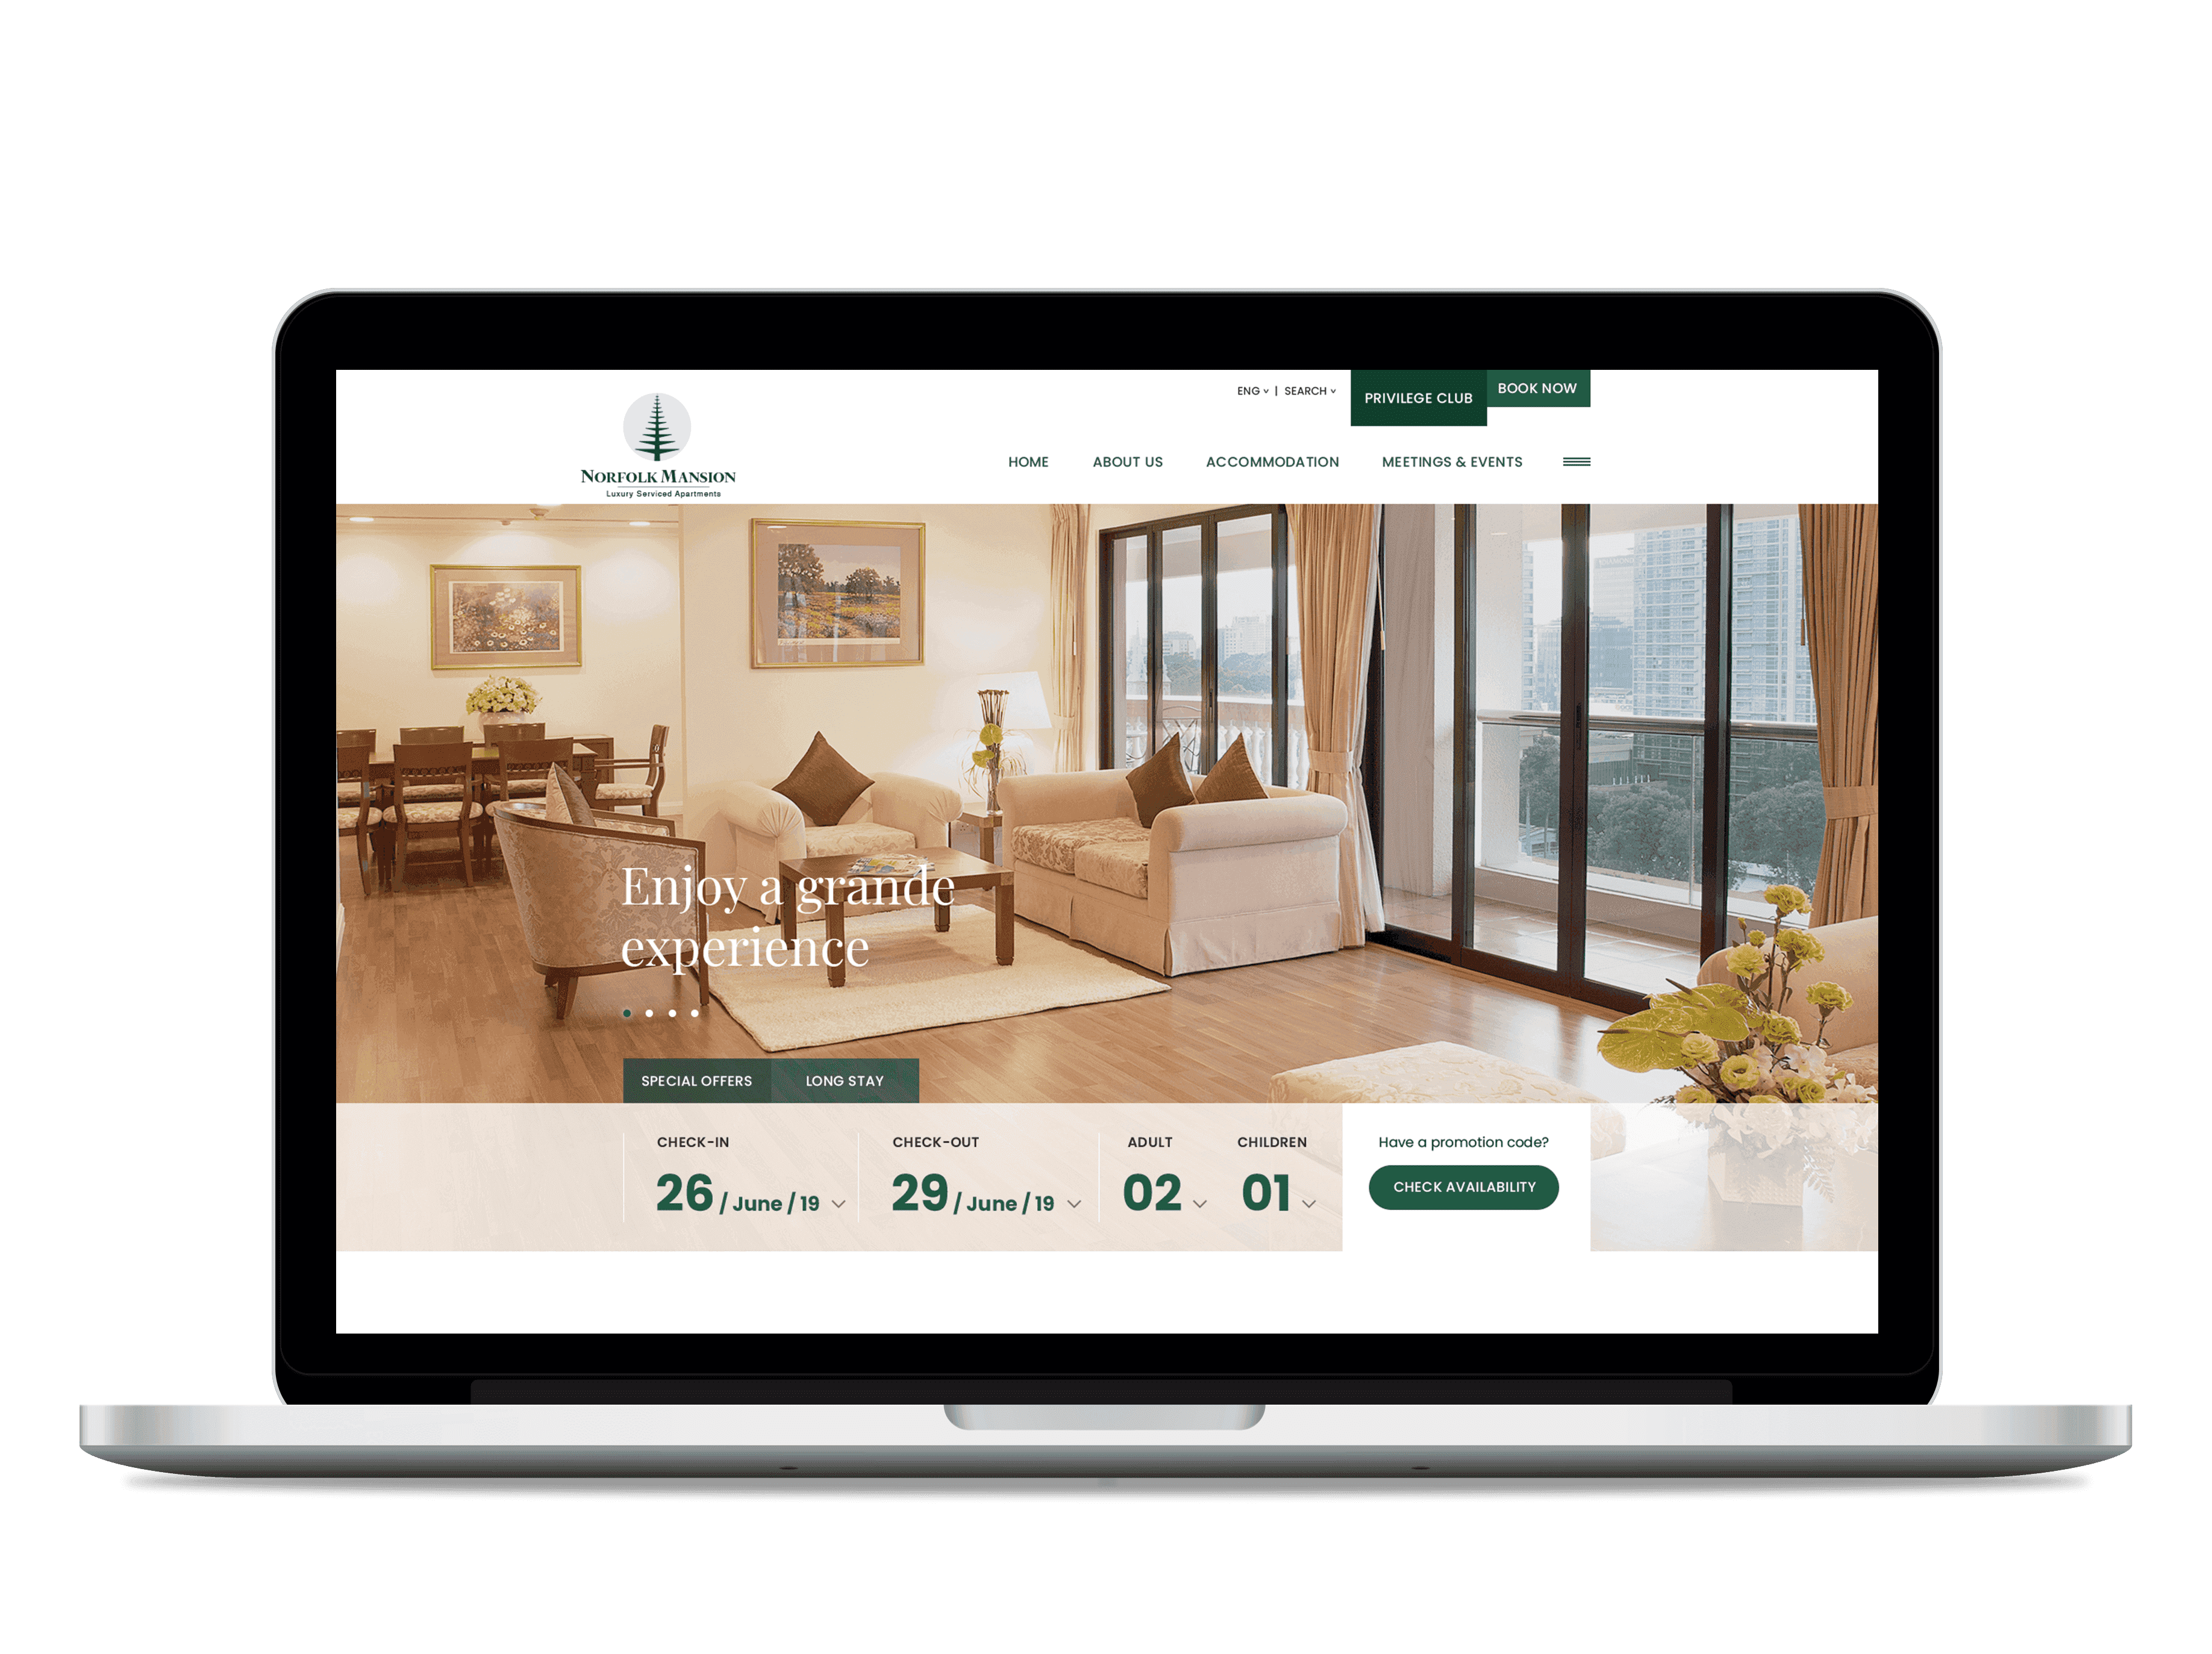 Web tech for leading hotel/hospitality group of Vietnam: Norfolk group